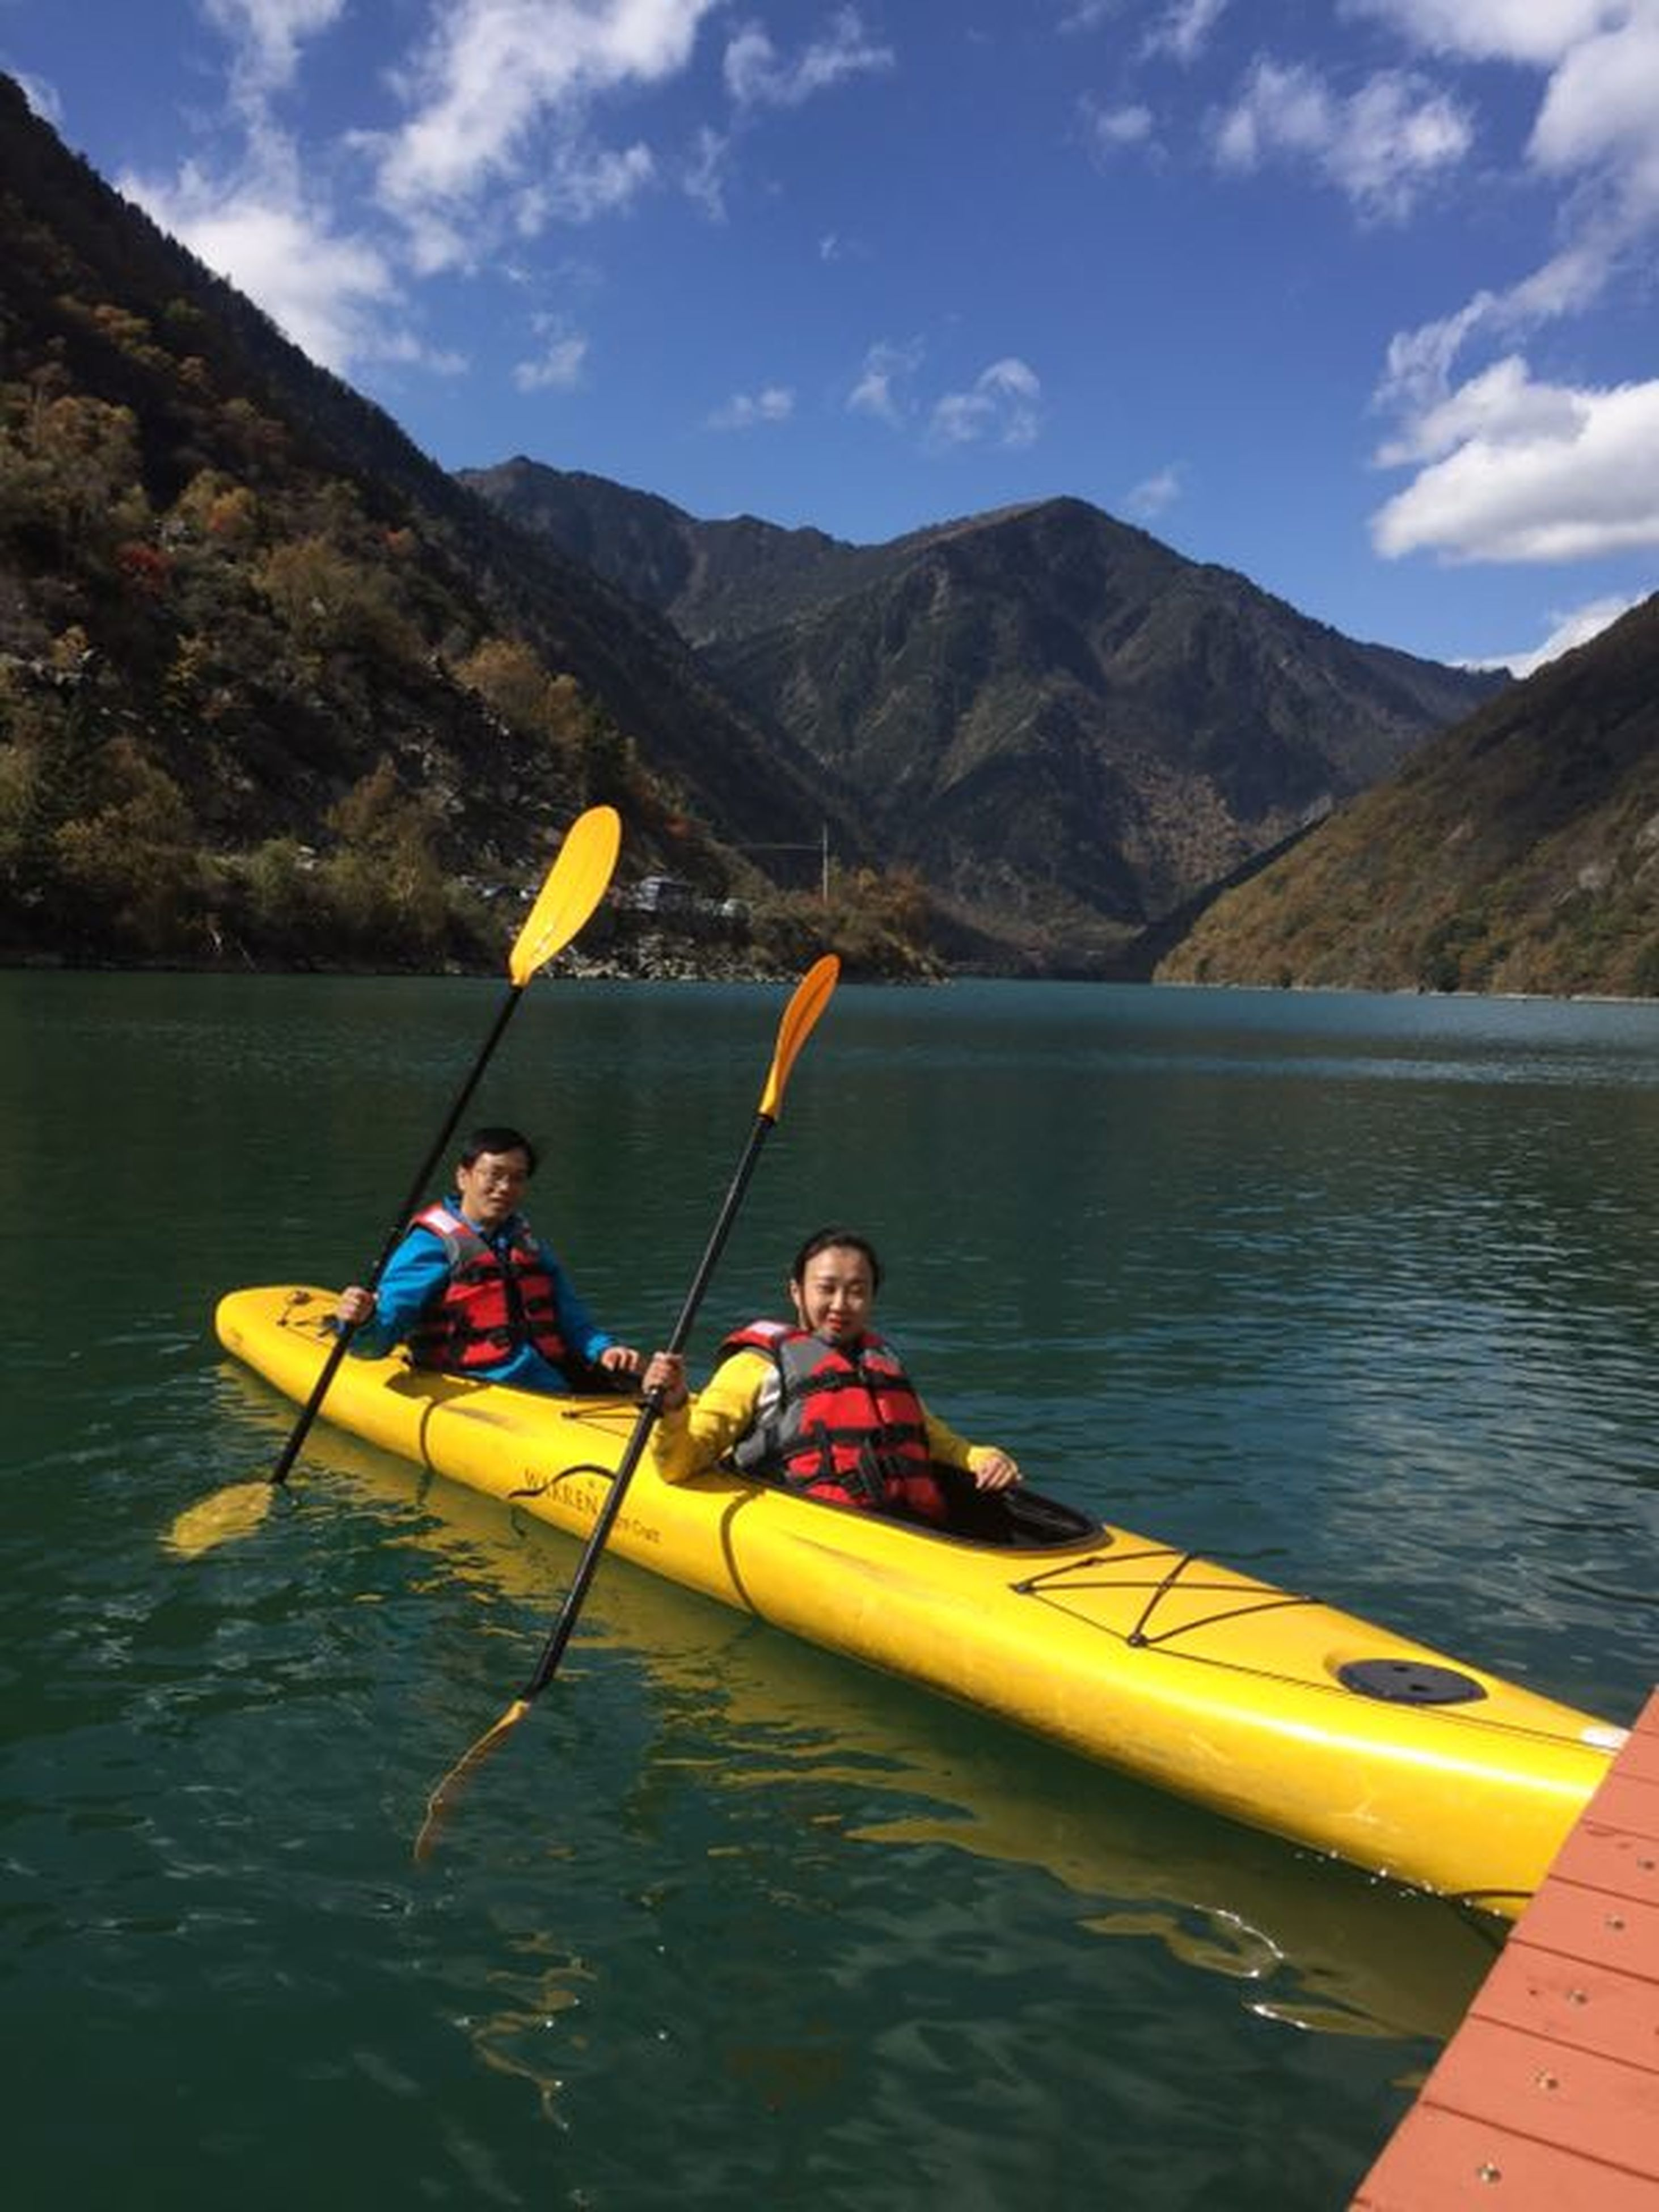 two people, child, kayak, lake, oar, mountain, mature adult, togetherness, girls, life jacket, vacations, people, family, mountain range, adventure, full length, nautical vessel, adult, mature women, canoe, bonding, aquatic sport, mature couple, sports clothing, rowing, outdoor pursuit, childhood, water, nature, outdoors, day